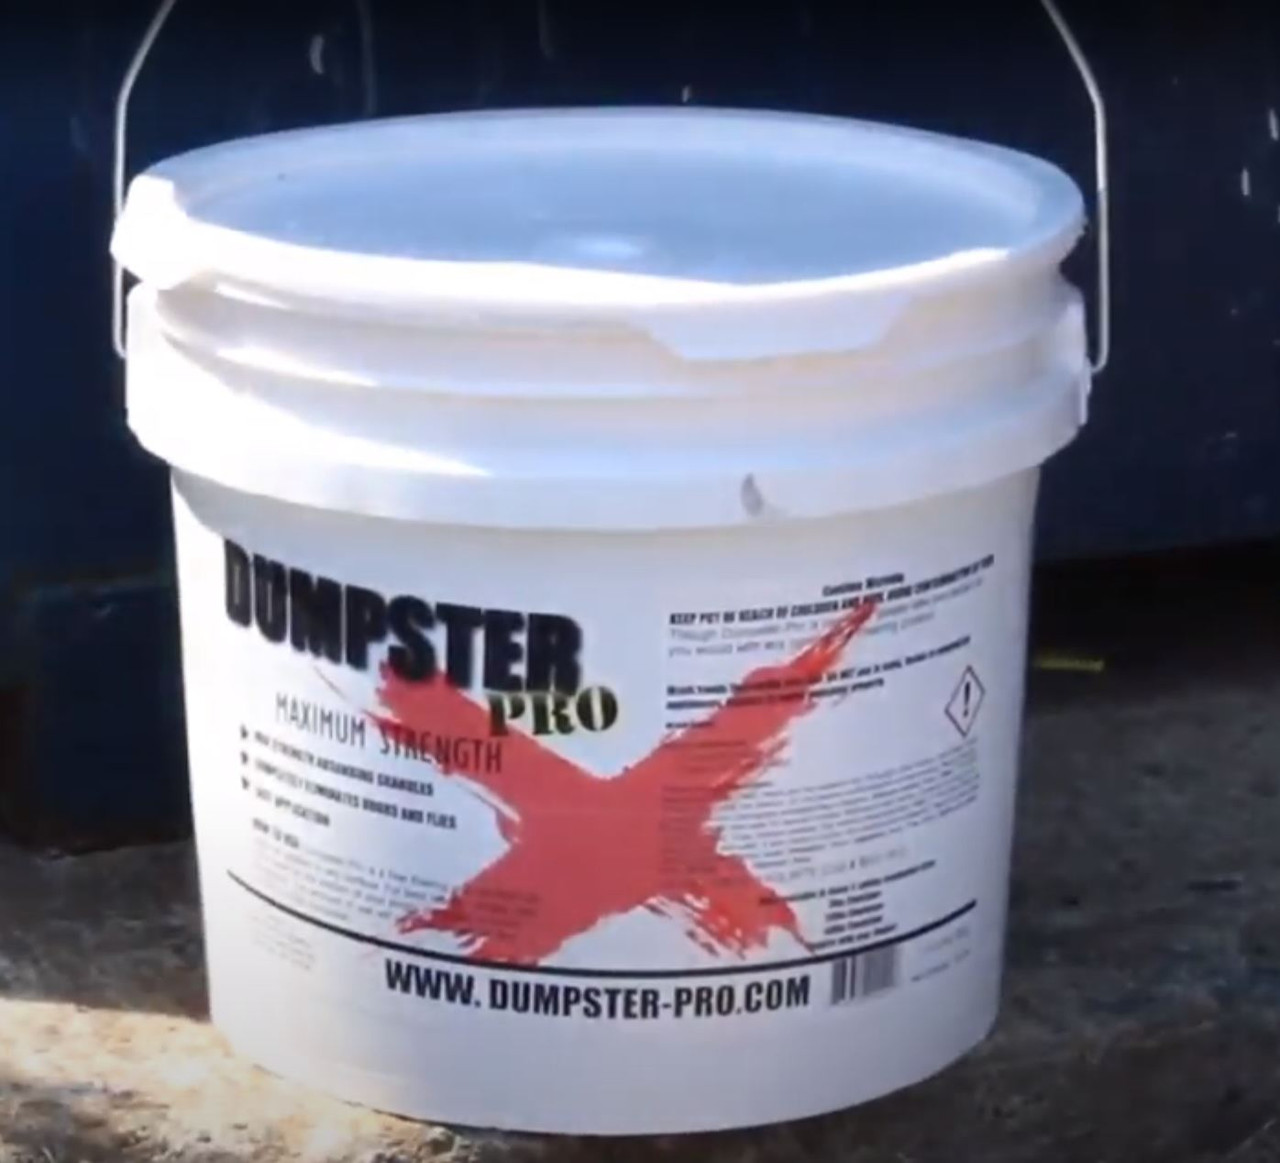 Dumpster Pro - 20 LBS - Garbage Deodorizer Absorbing Granules to Eliminates Odors and Flies